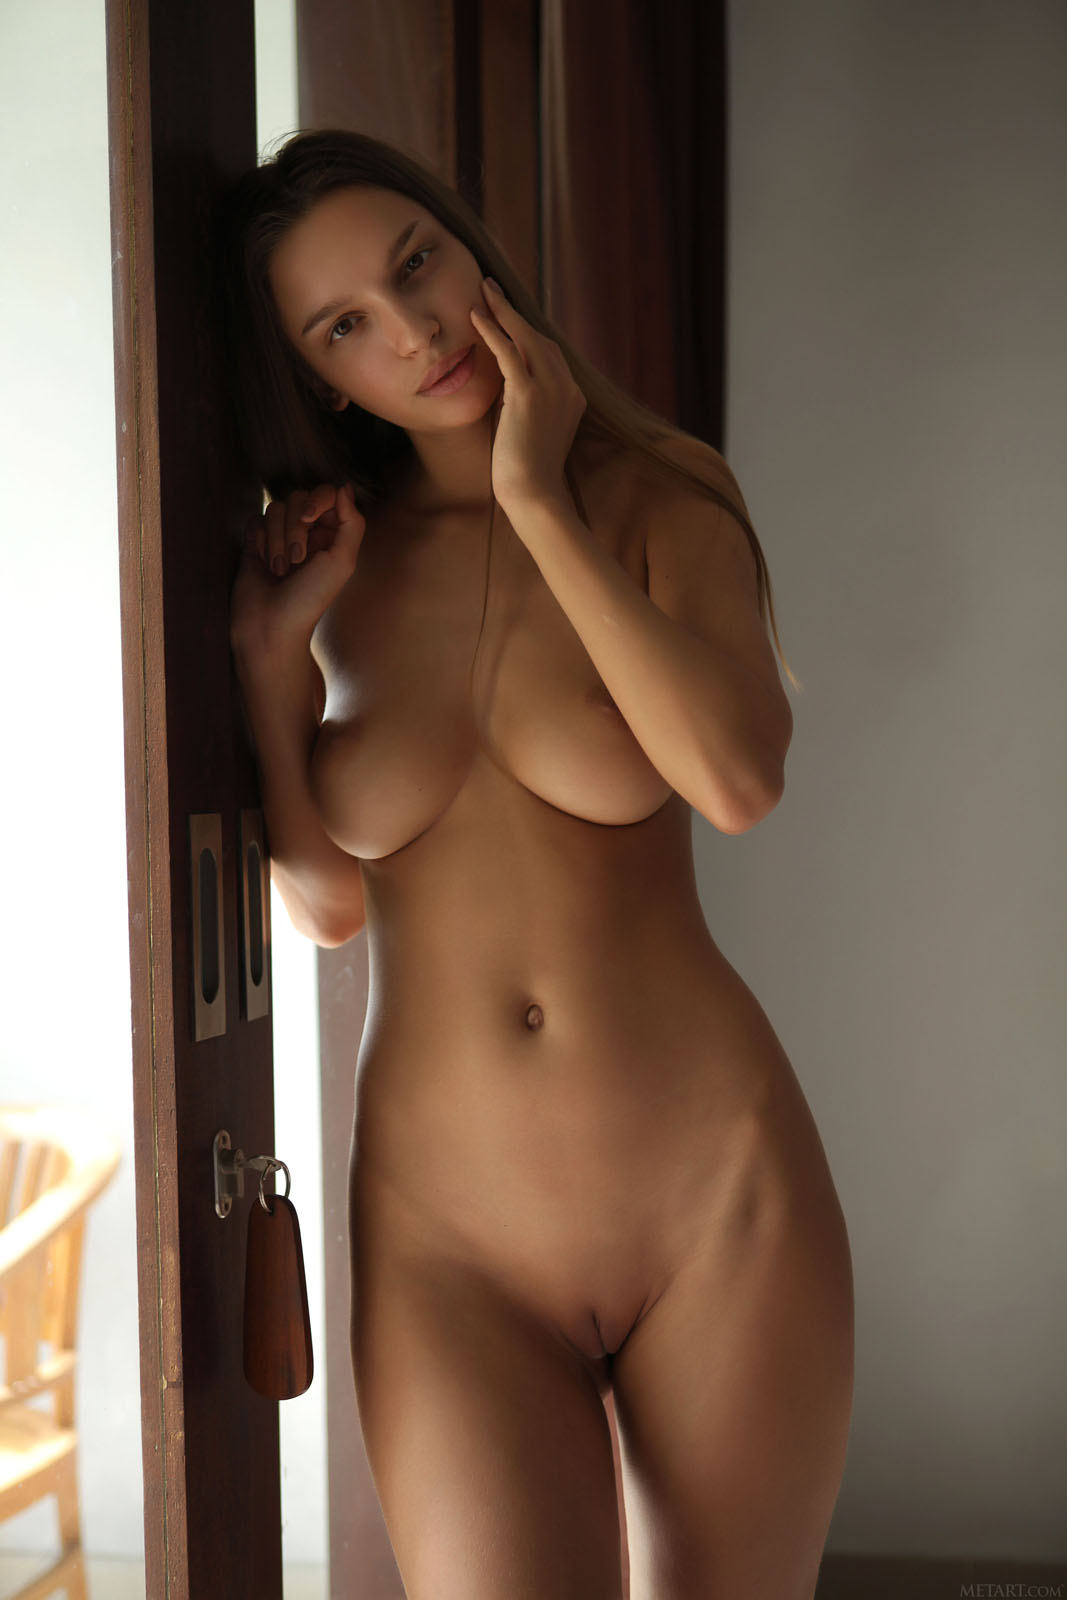 Plus size models nude videos-9537